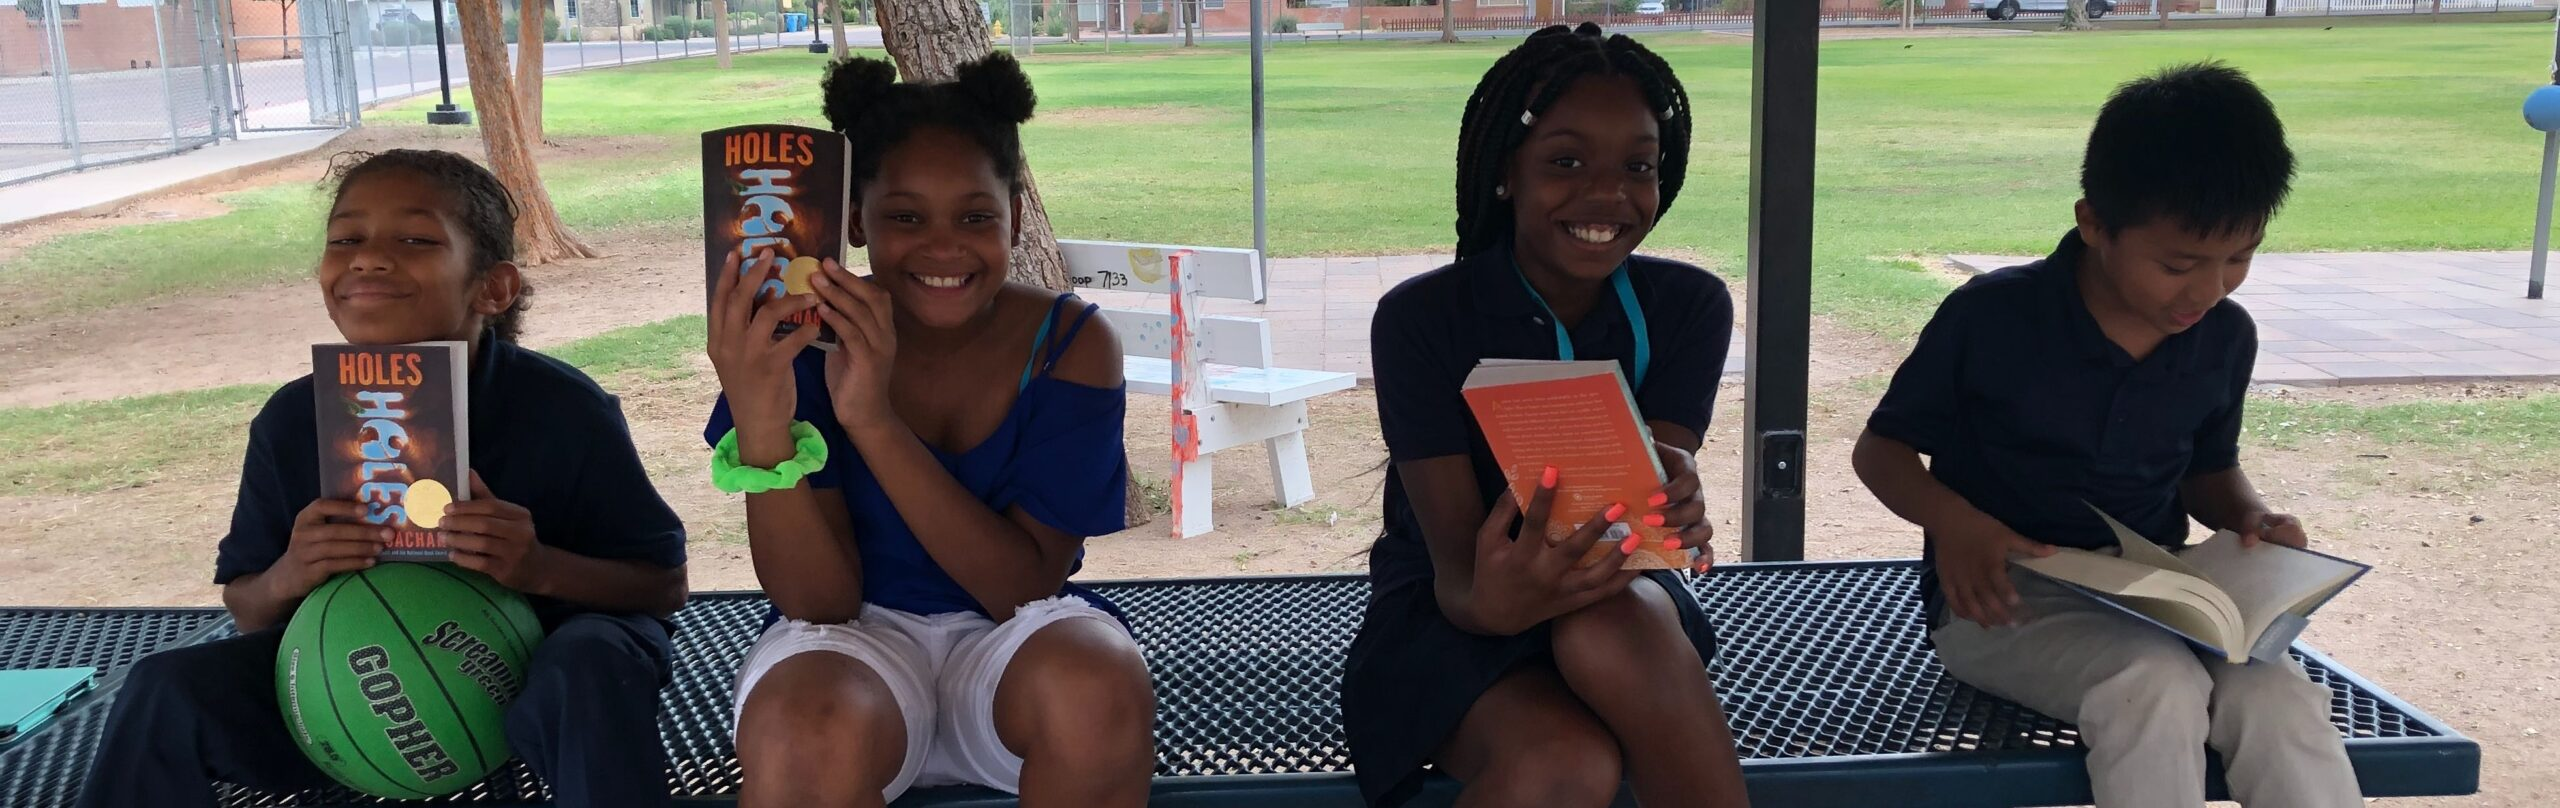 four students smile at the camera holding books